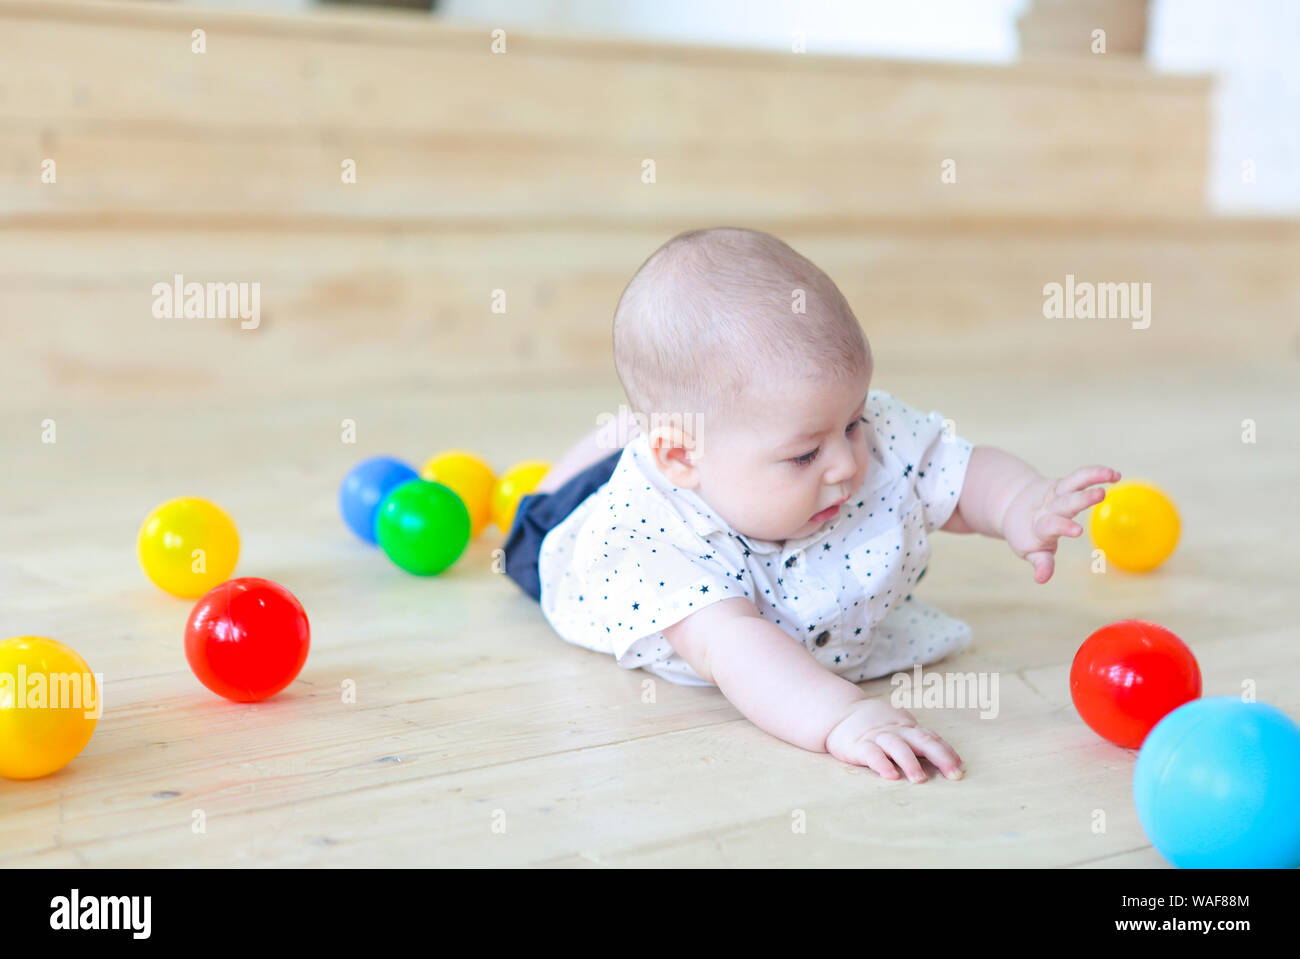 Baby boy playing with balls. Colorful toys for kids. Kid in play room. Toddler kid with balls  for children. Stock Photo